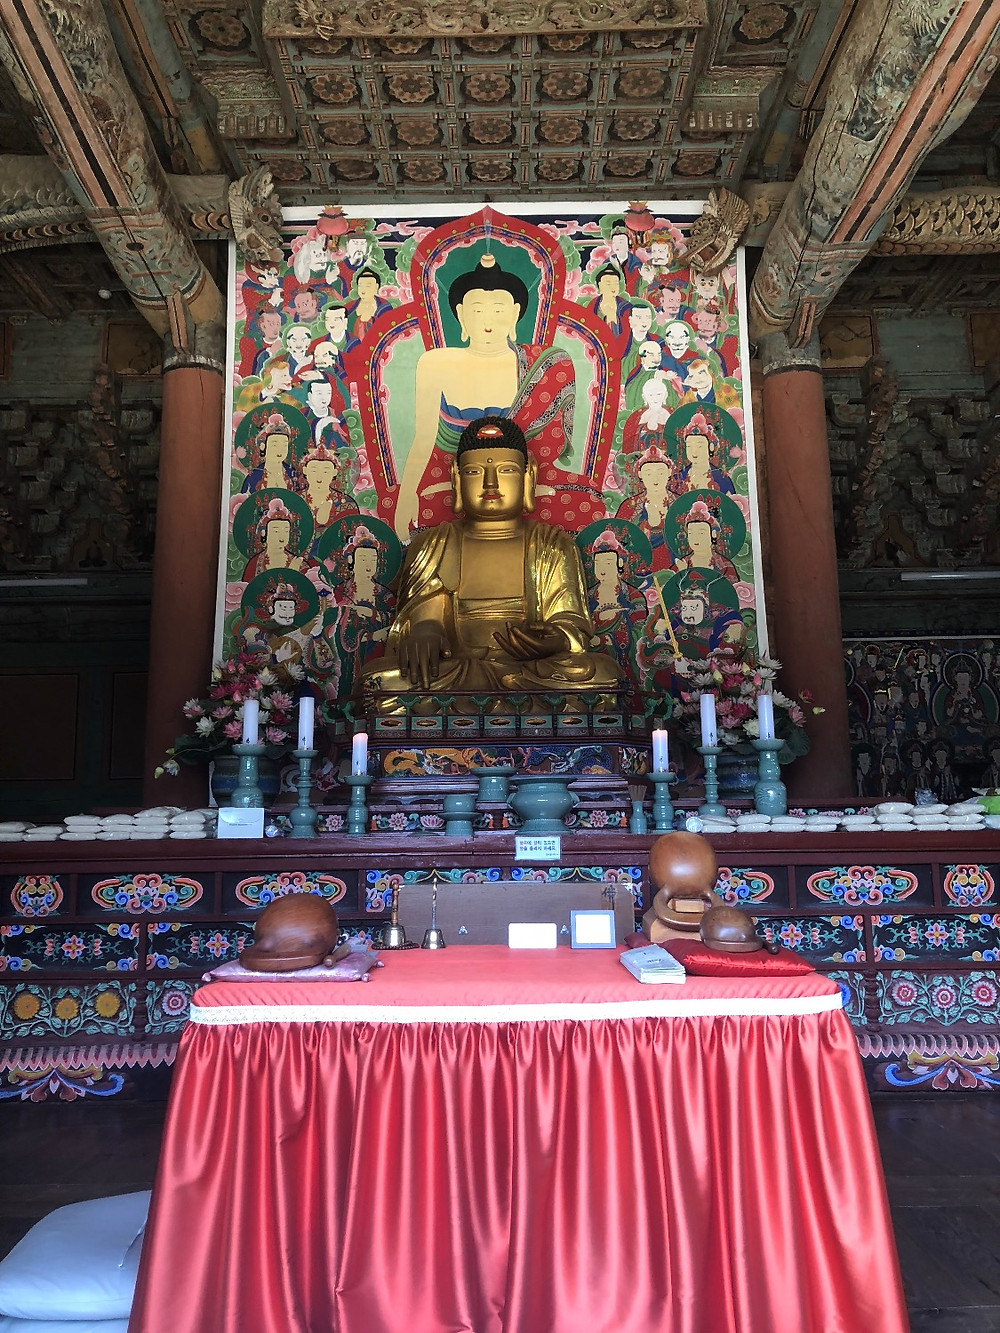 The main temple's Buddha statue